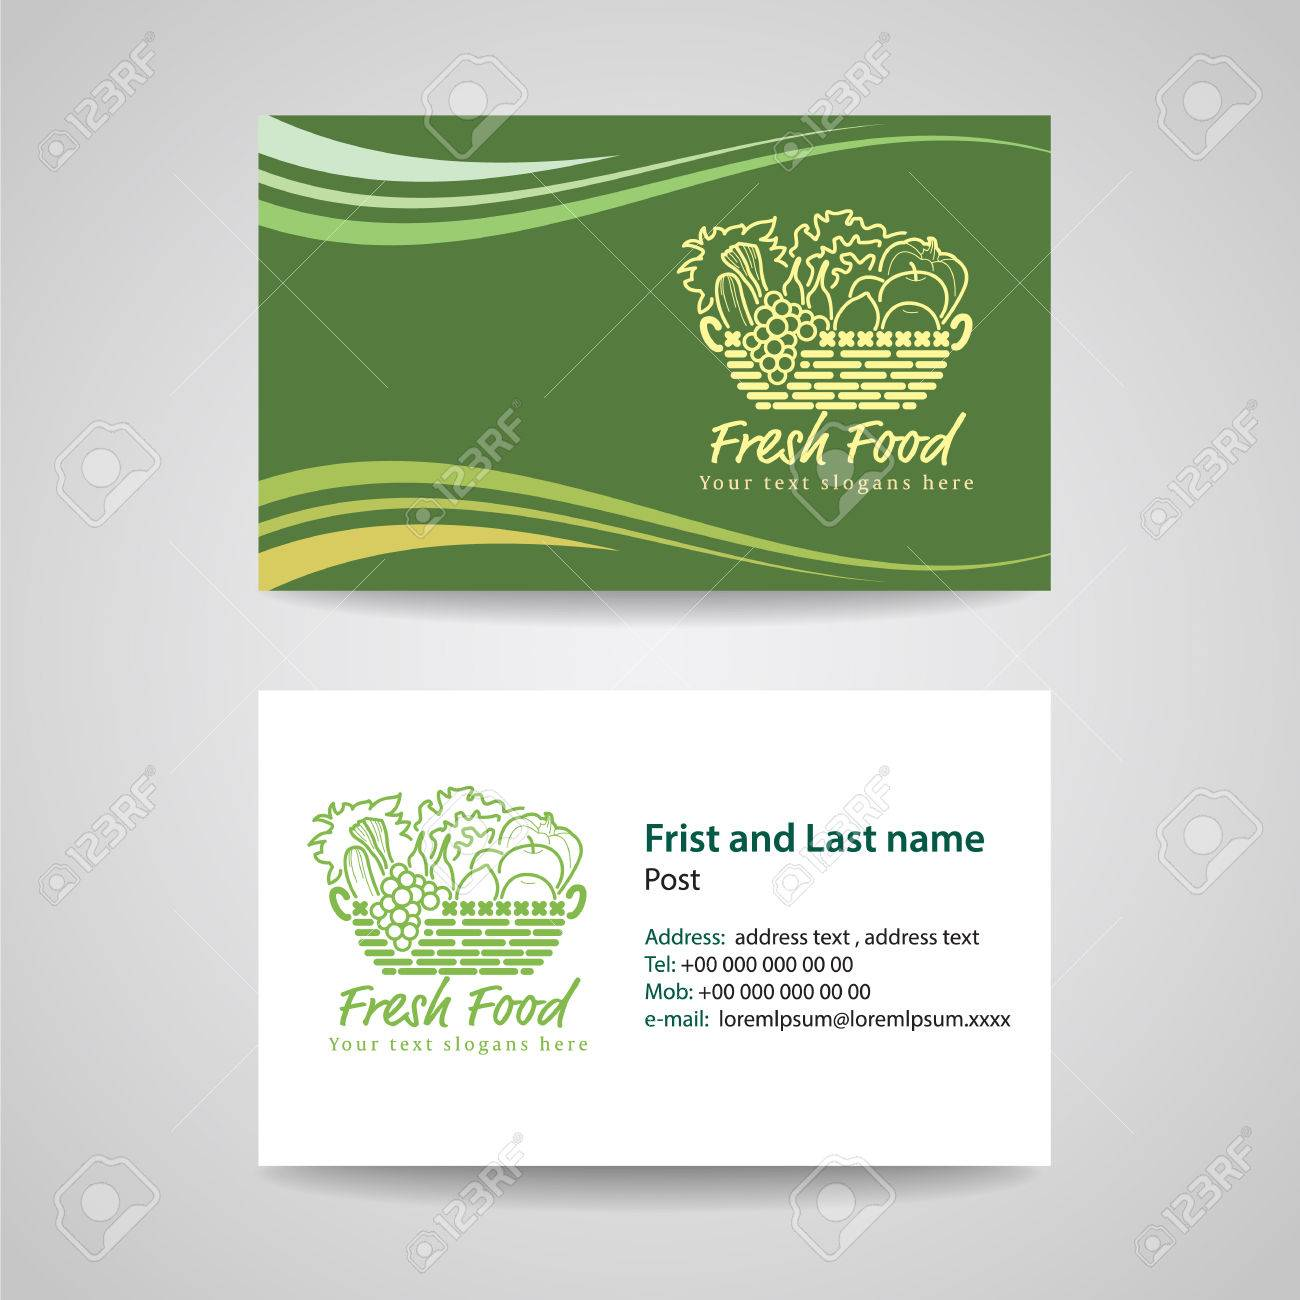 Business card green background template for fresh food and basket business card green background template for fresh food and basket vegetables logo vector design stock vector reheart Images